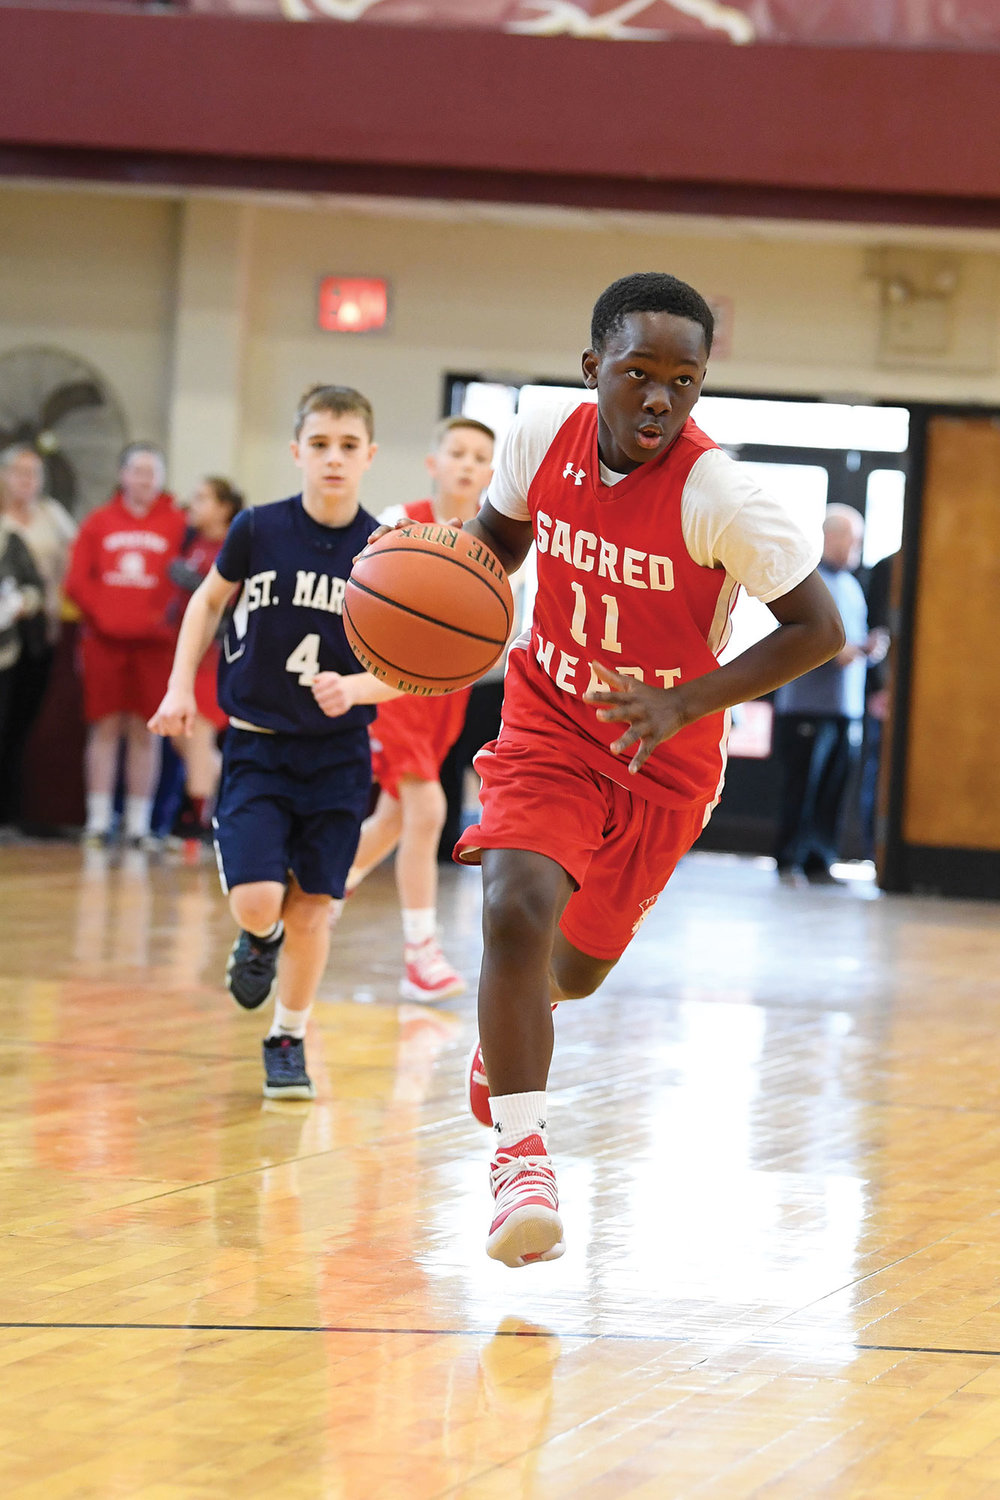 Isaiah Jones of Sacred Heart, Staten Island, brings up the ball against St. Mary, Mother of the Church, Fishkill, in the sixth grade boys' title game.